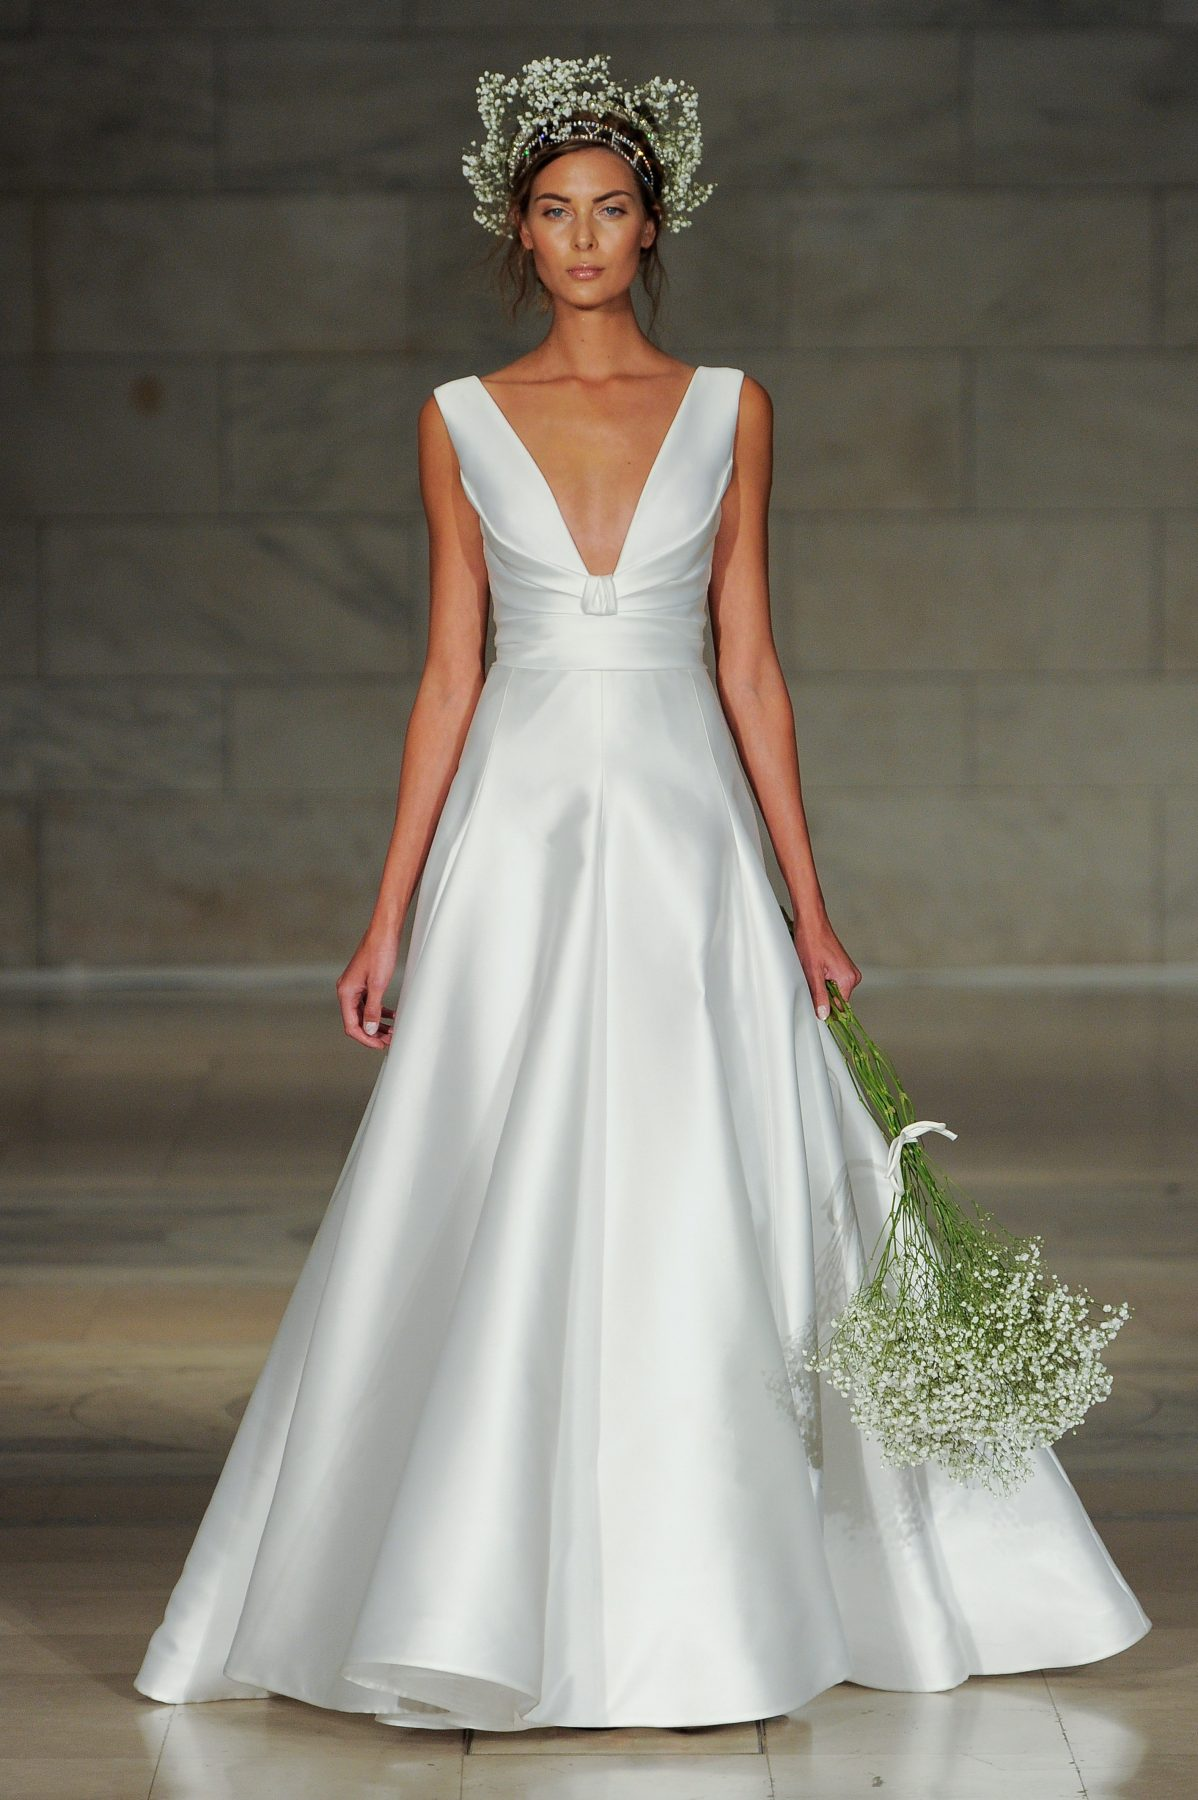 Reem Acra Style #ENDEAR SIMPLE A-LINE WEDDING DRESS